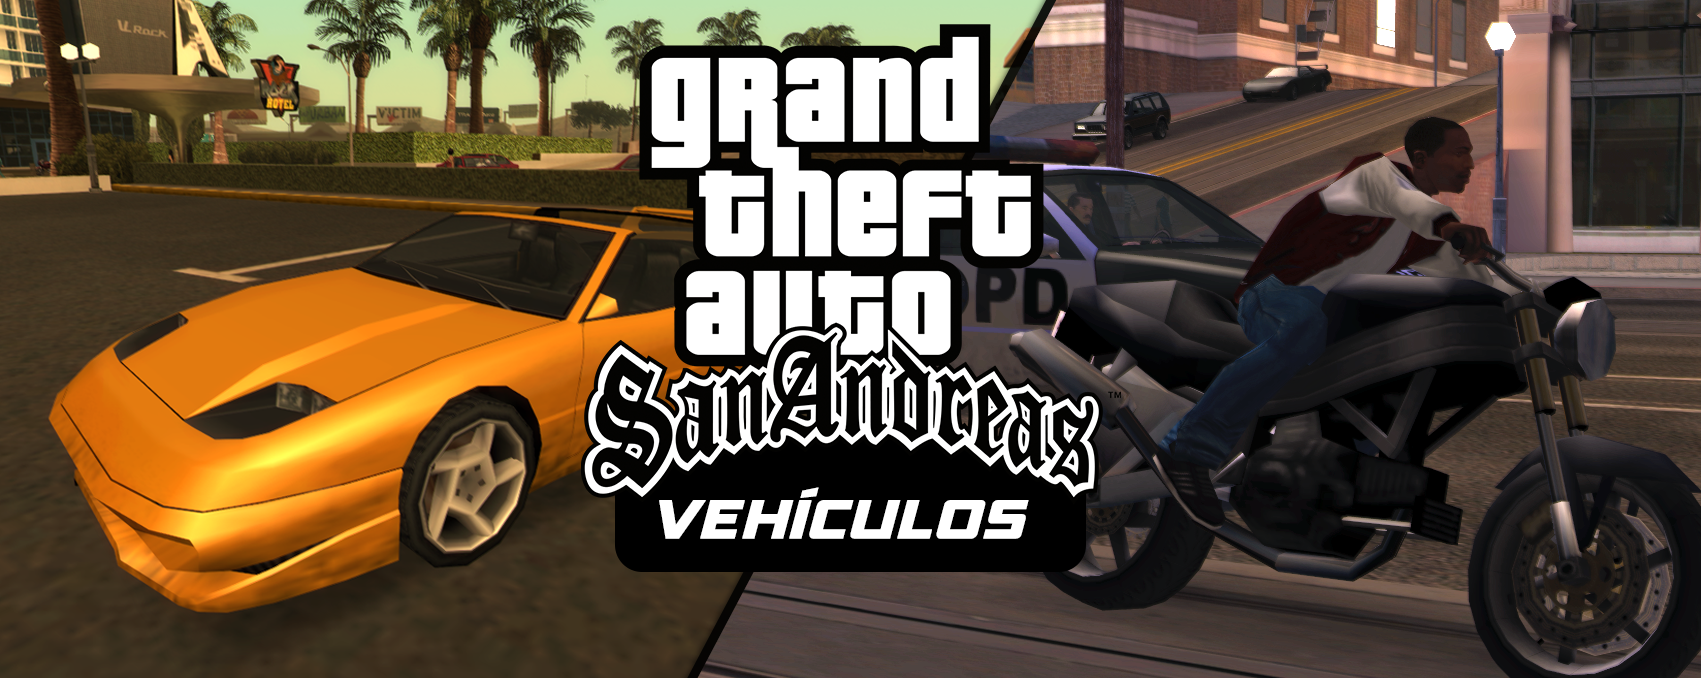 gta san andreas modificado download completo para pc